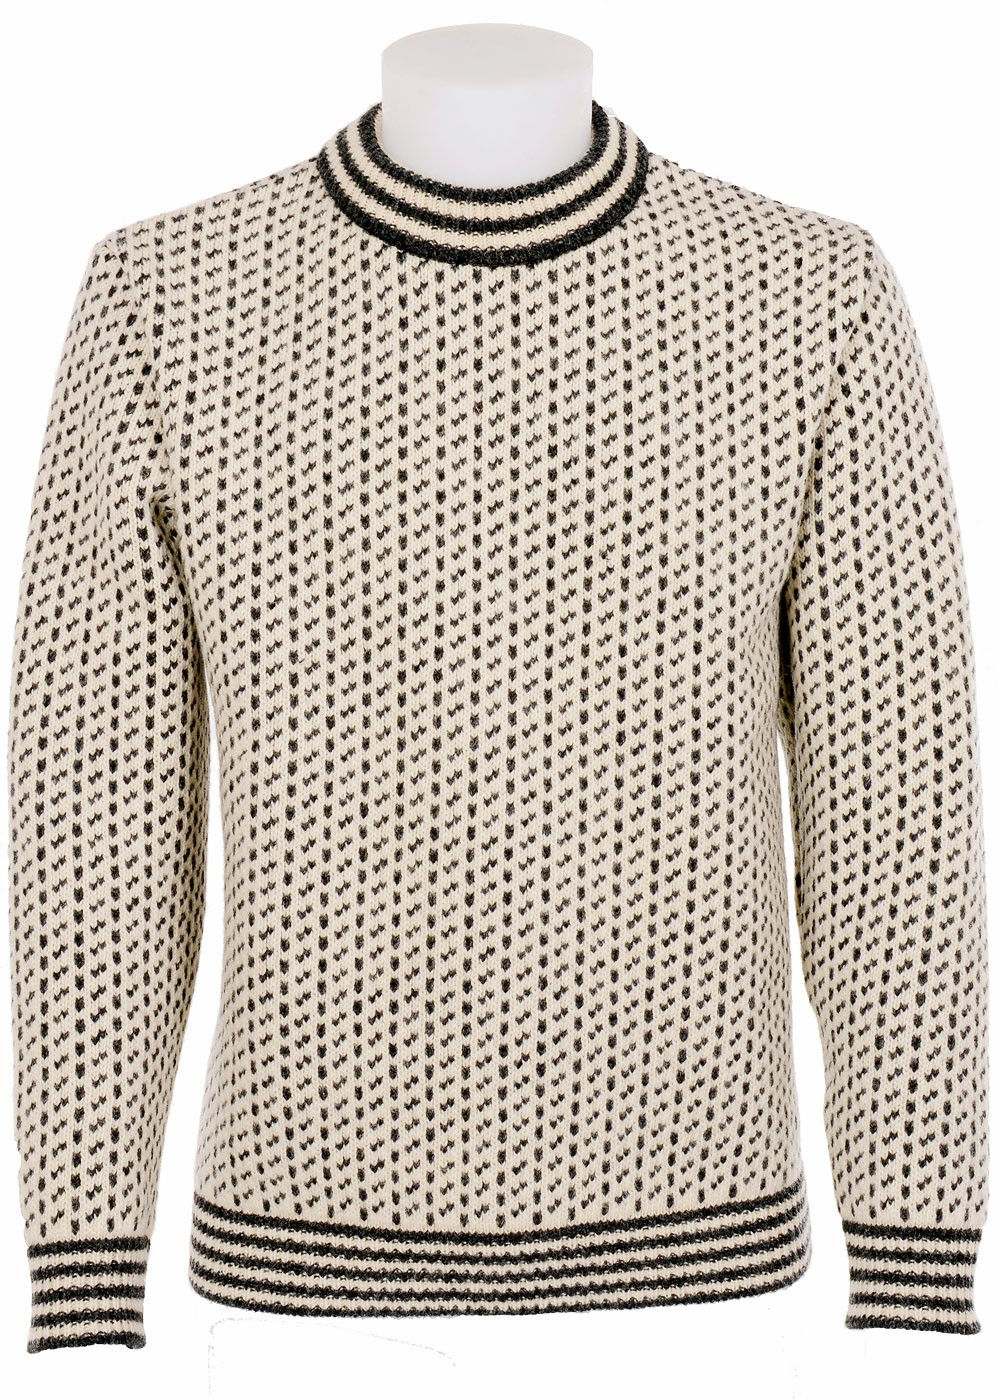 Banana Republic Merino Sweater